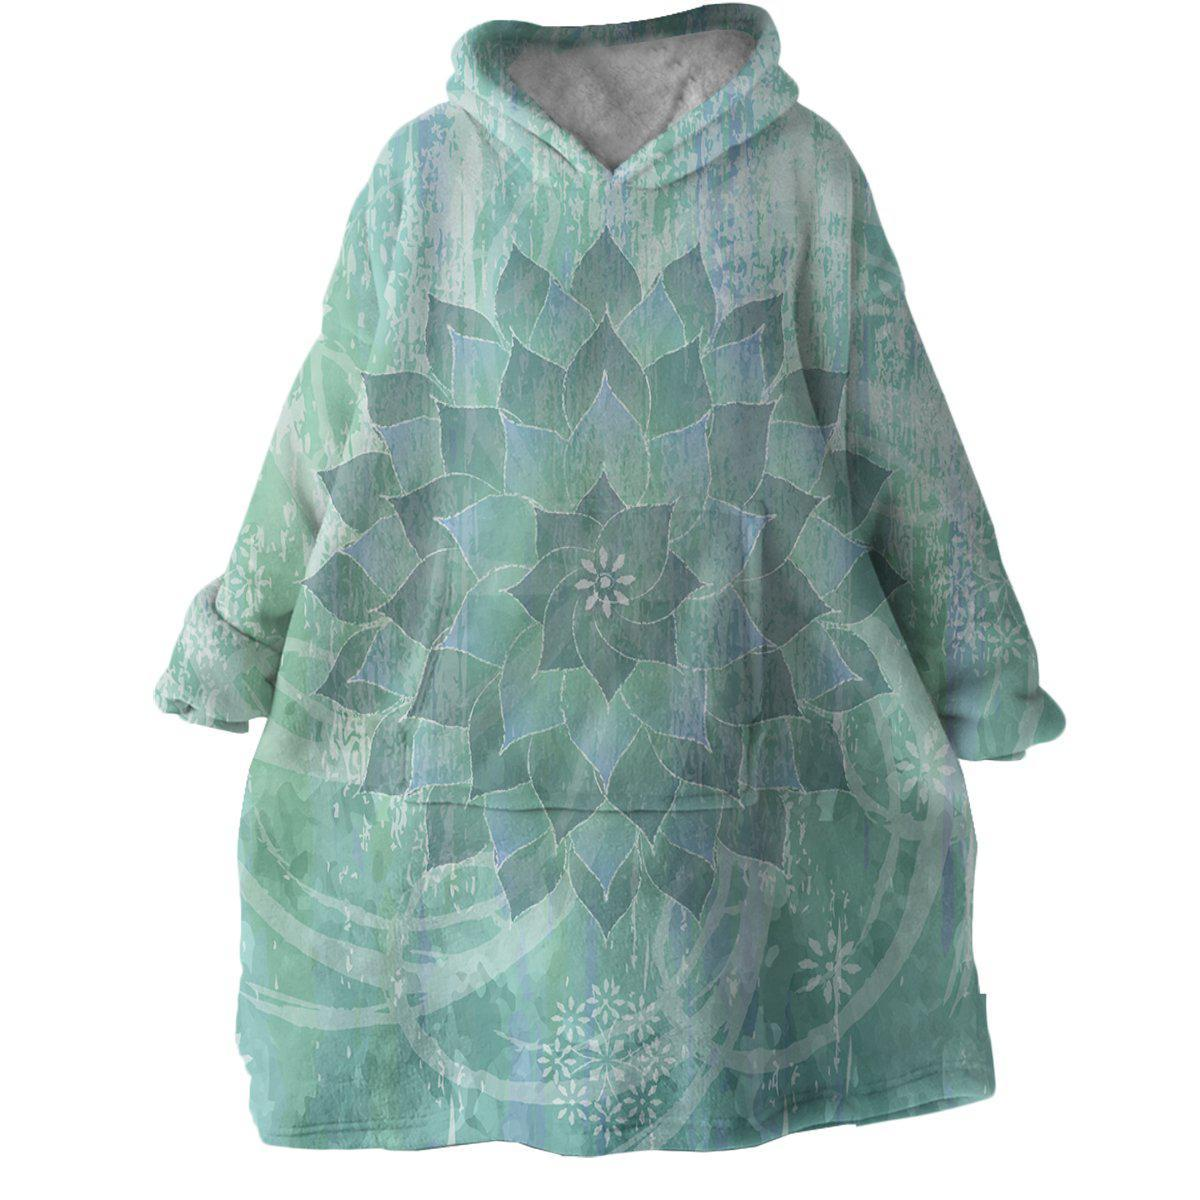 The Ocean Hues Wearable Blanket Hoodie